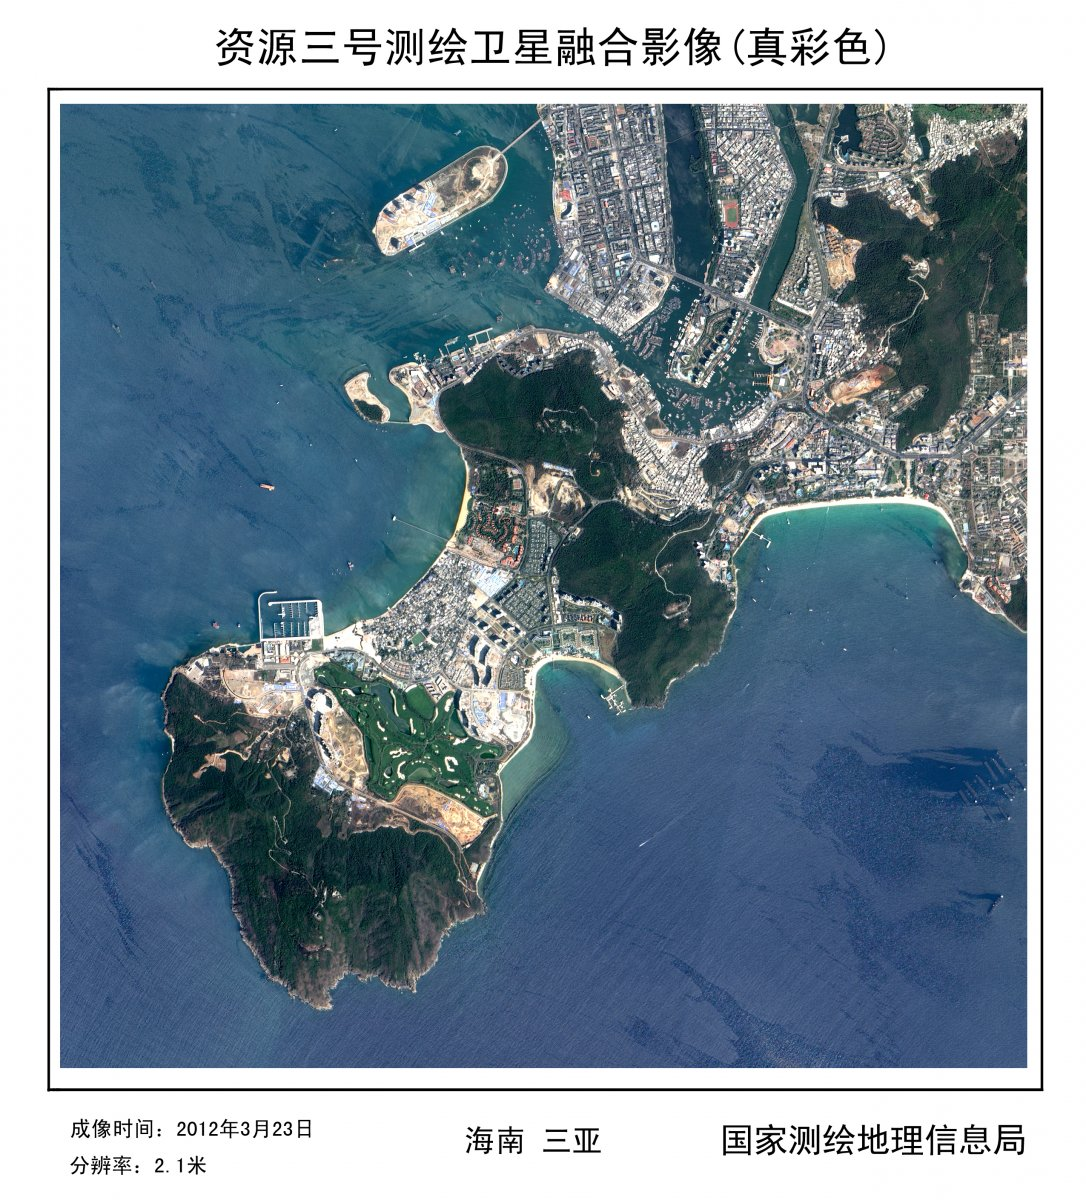 An image of Hainan captured by Ziyuan-3 (I) in March 2012.